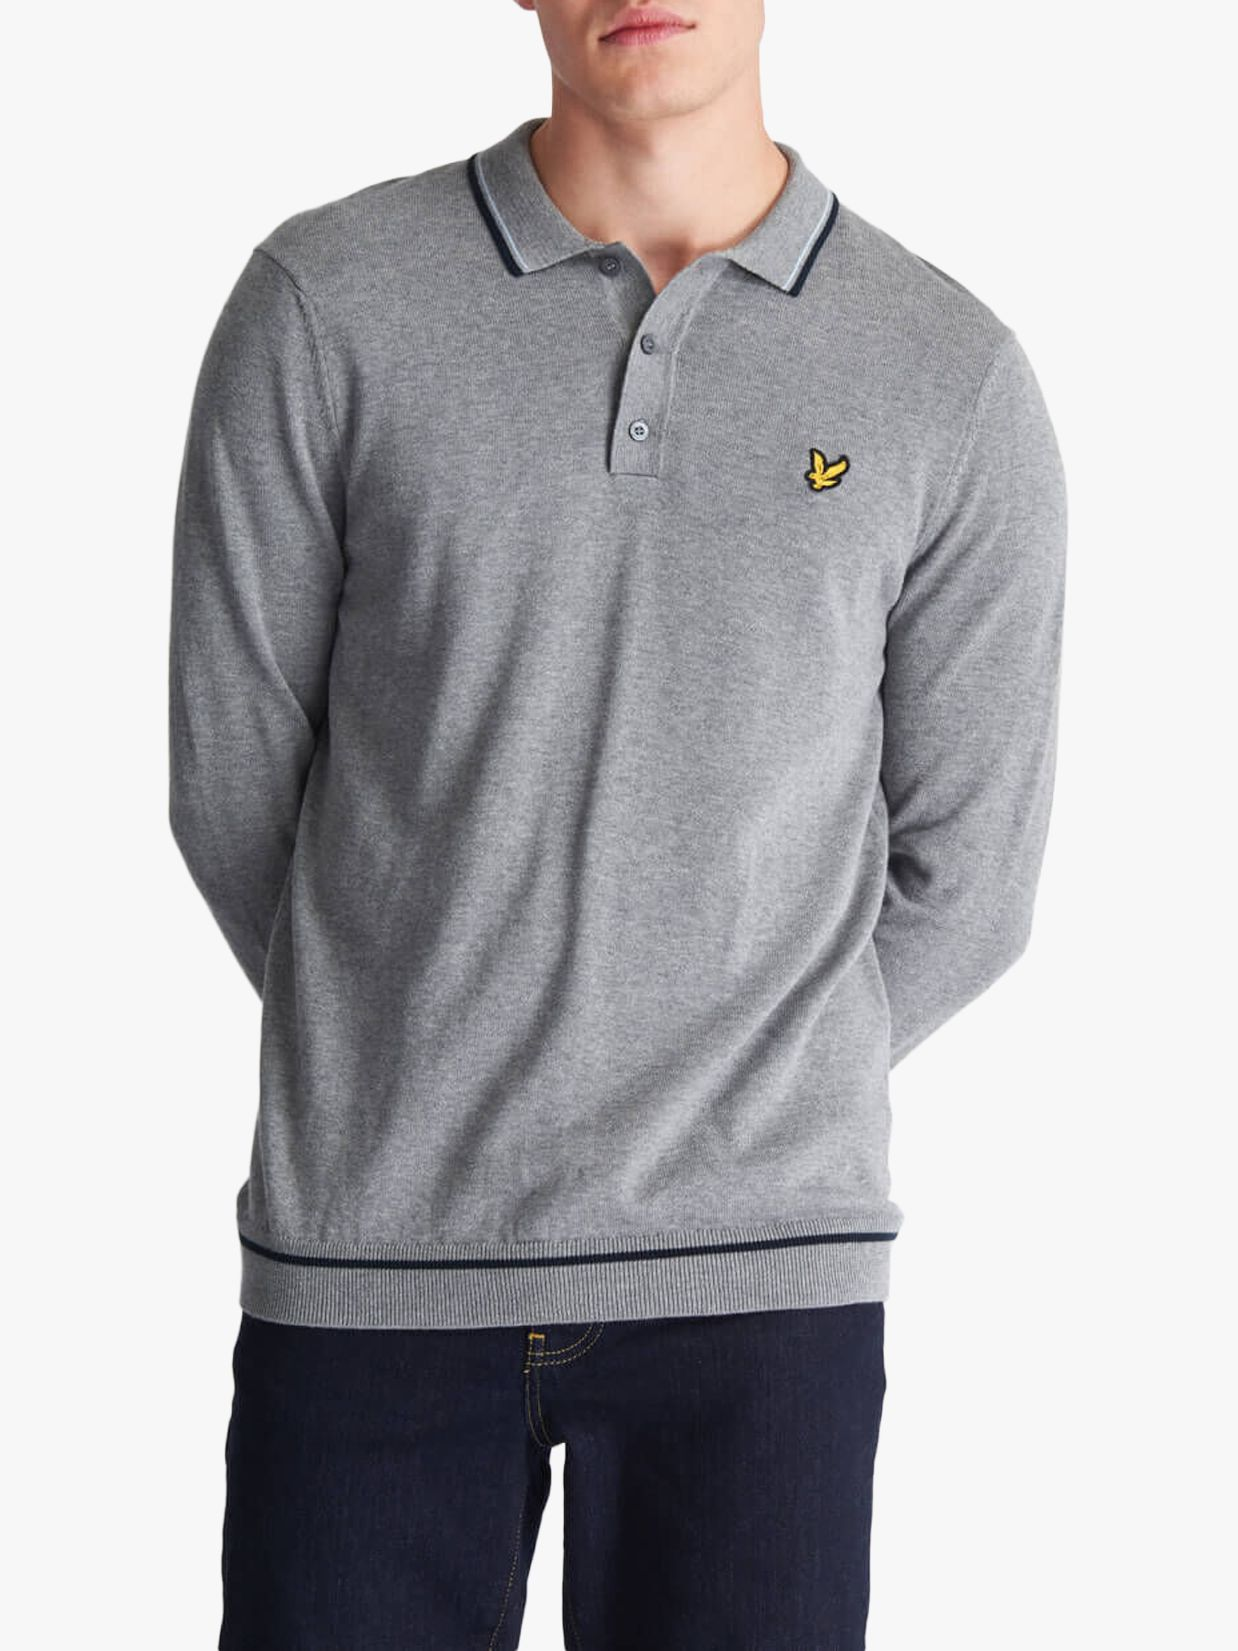 Lyle & Scott Lyle & Scott Knitted Long Sleeve Polo Shirt, Grey Marl